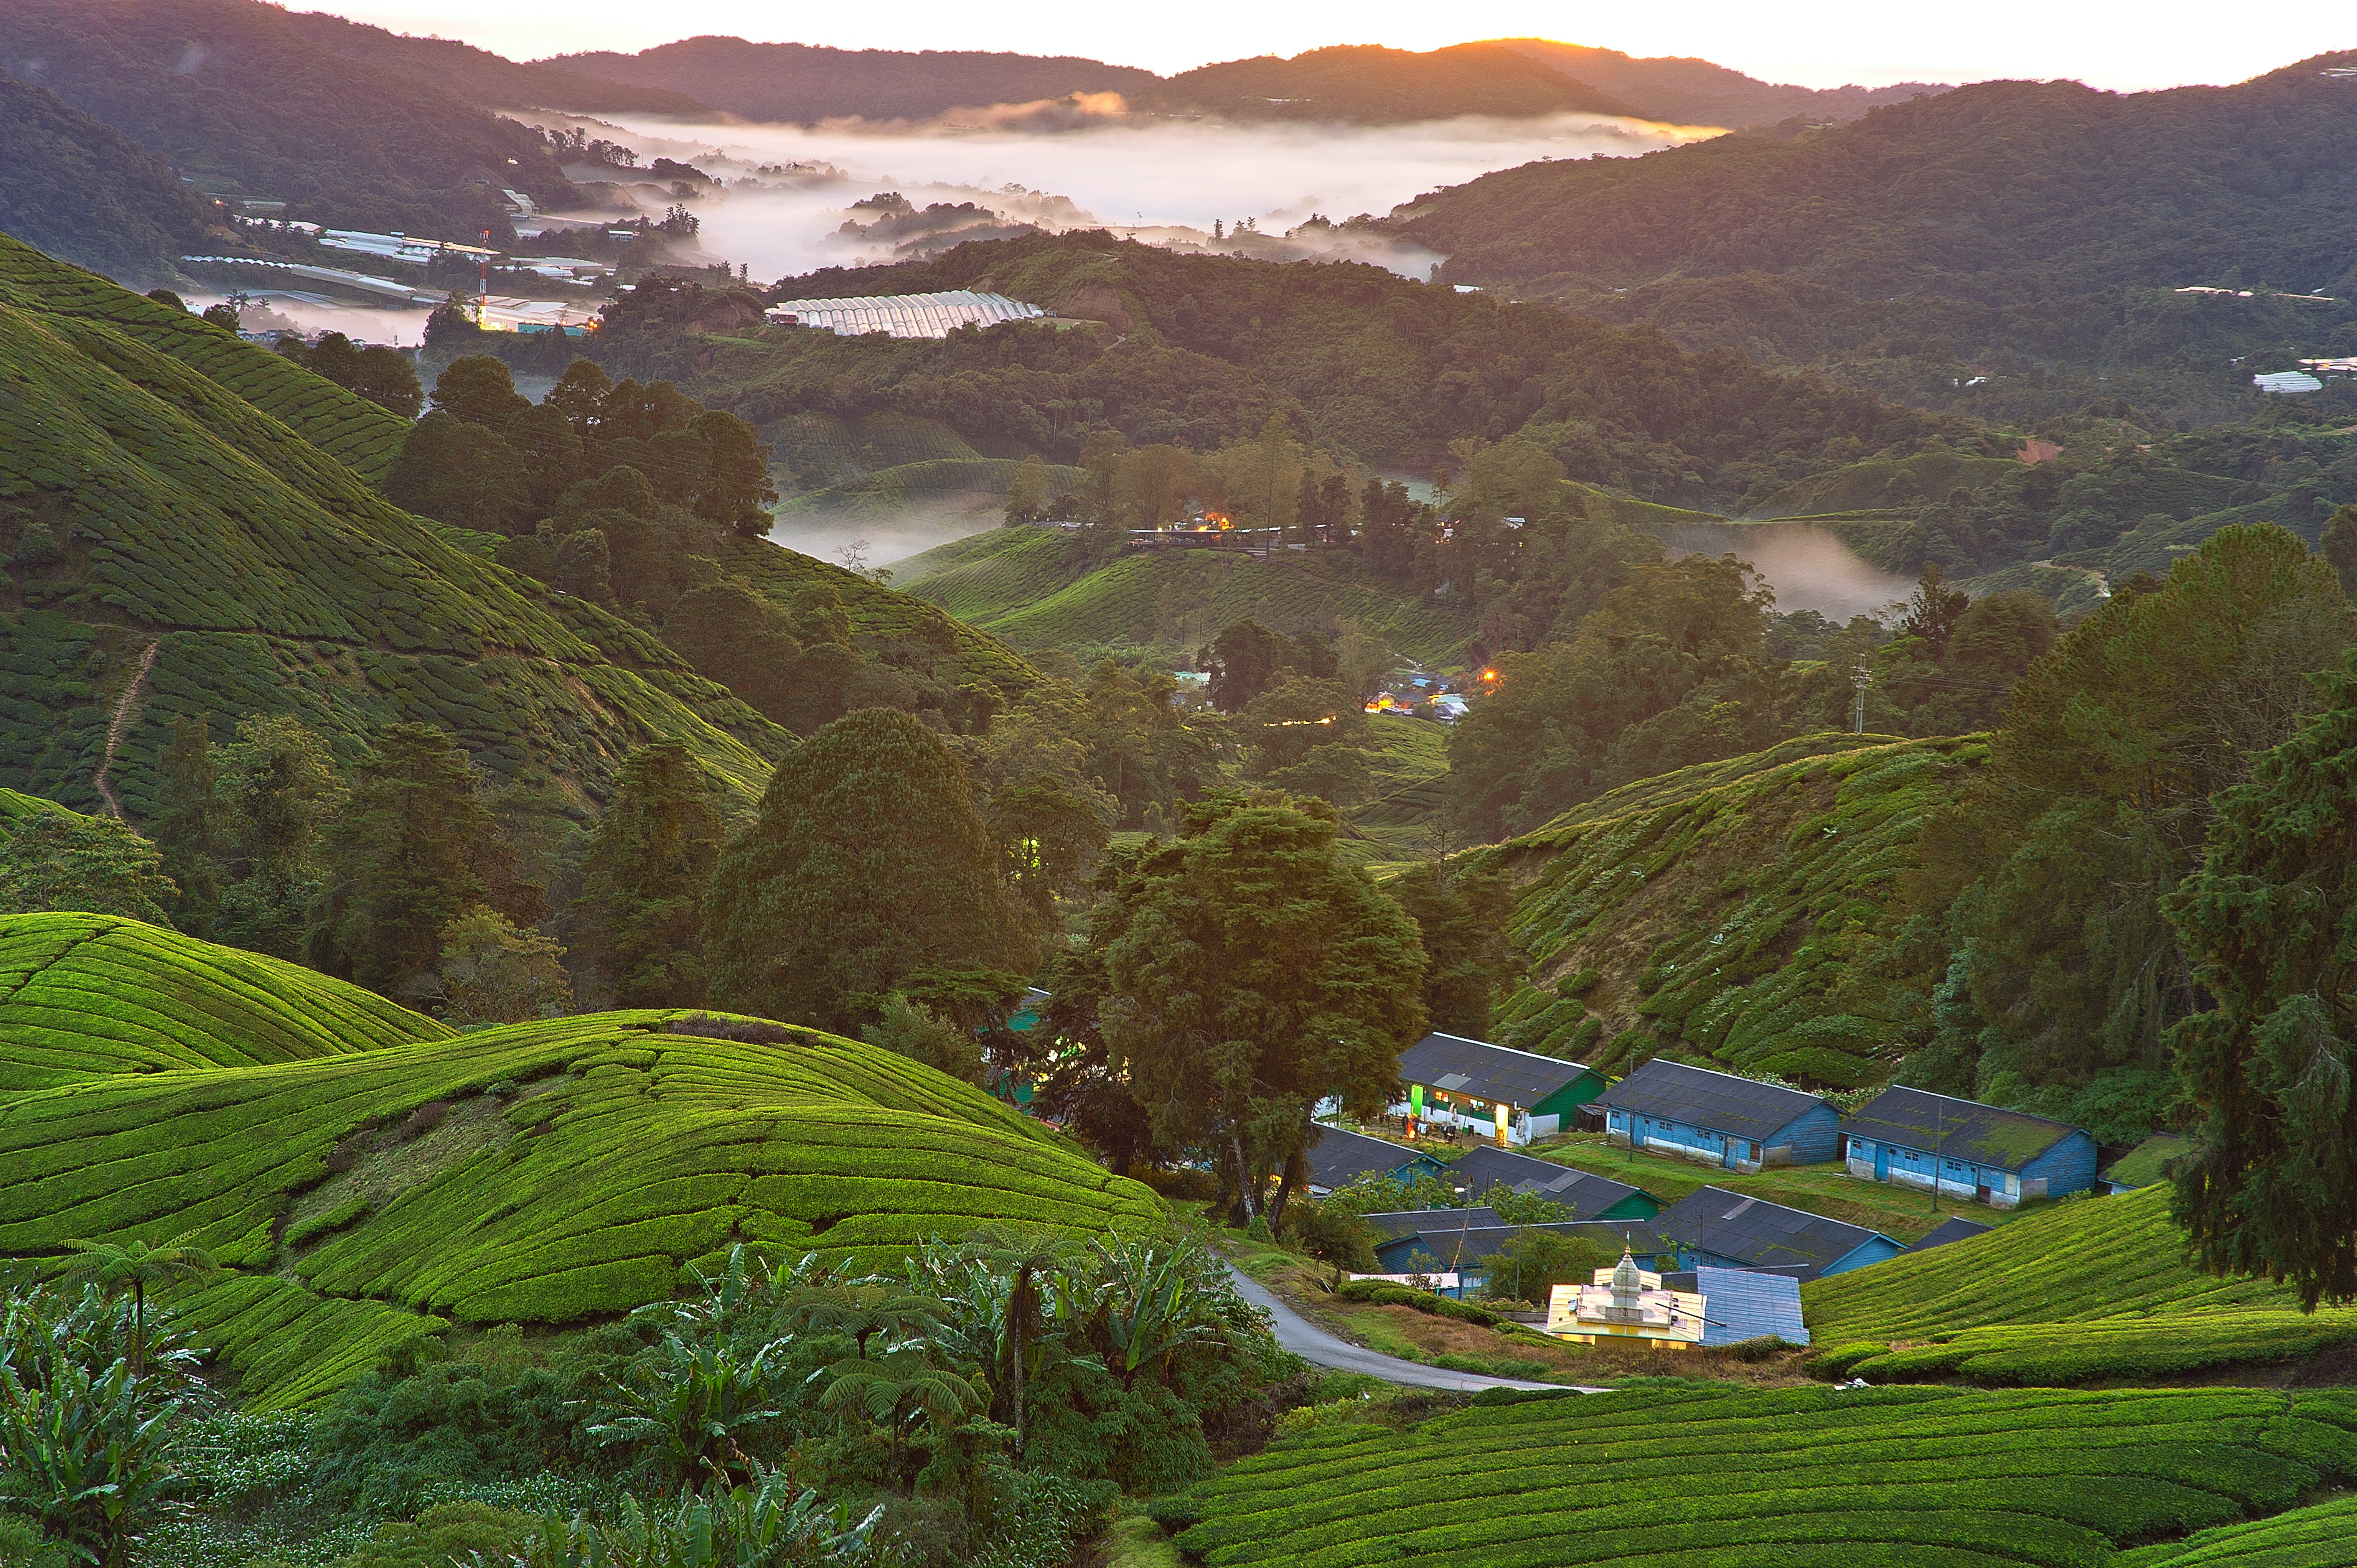 High Angle Photography of Village on Green Mountains